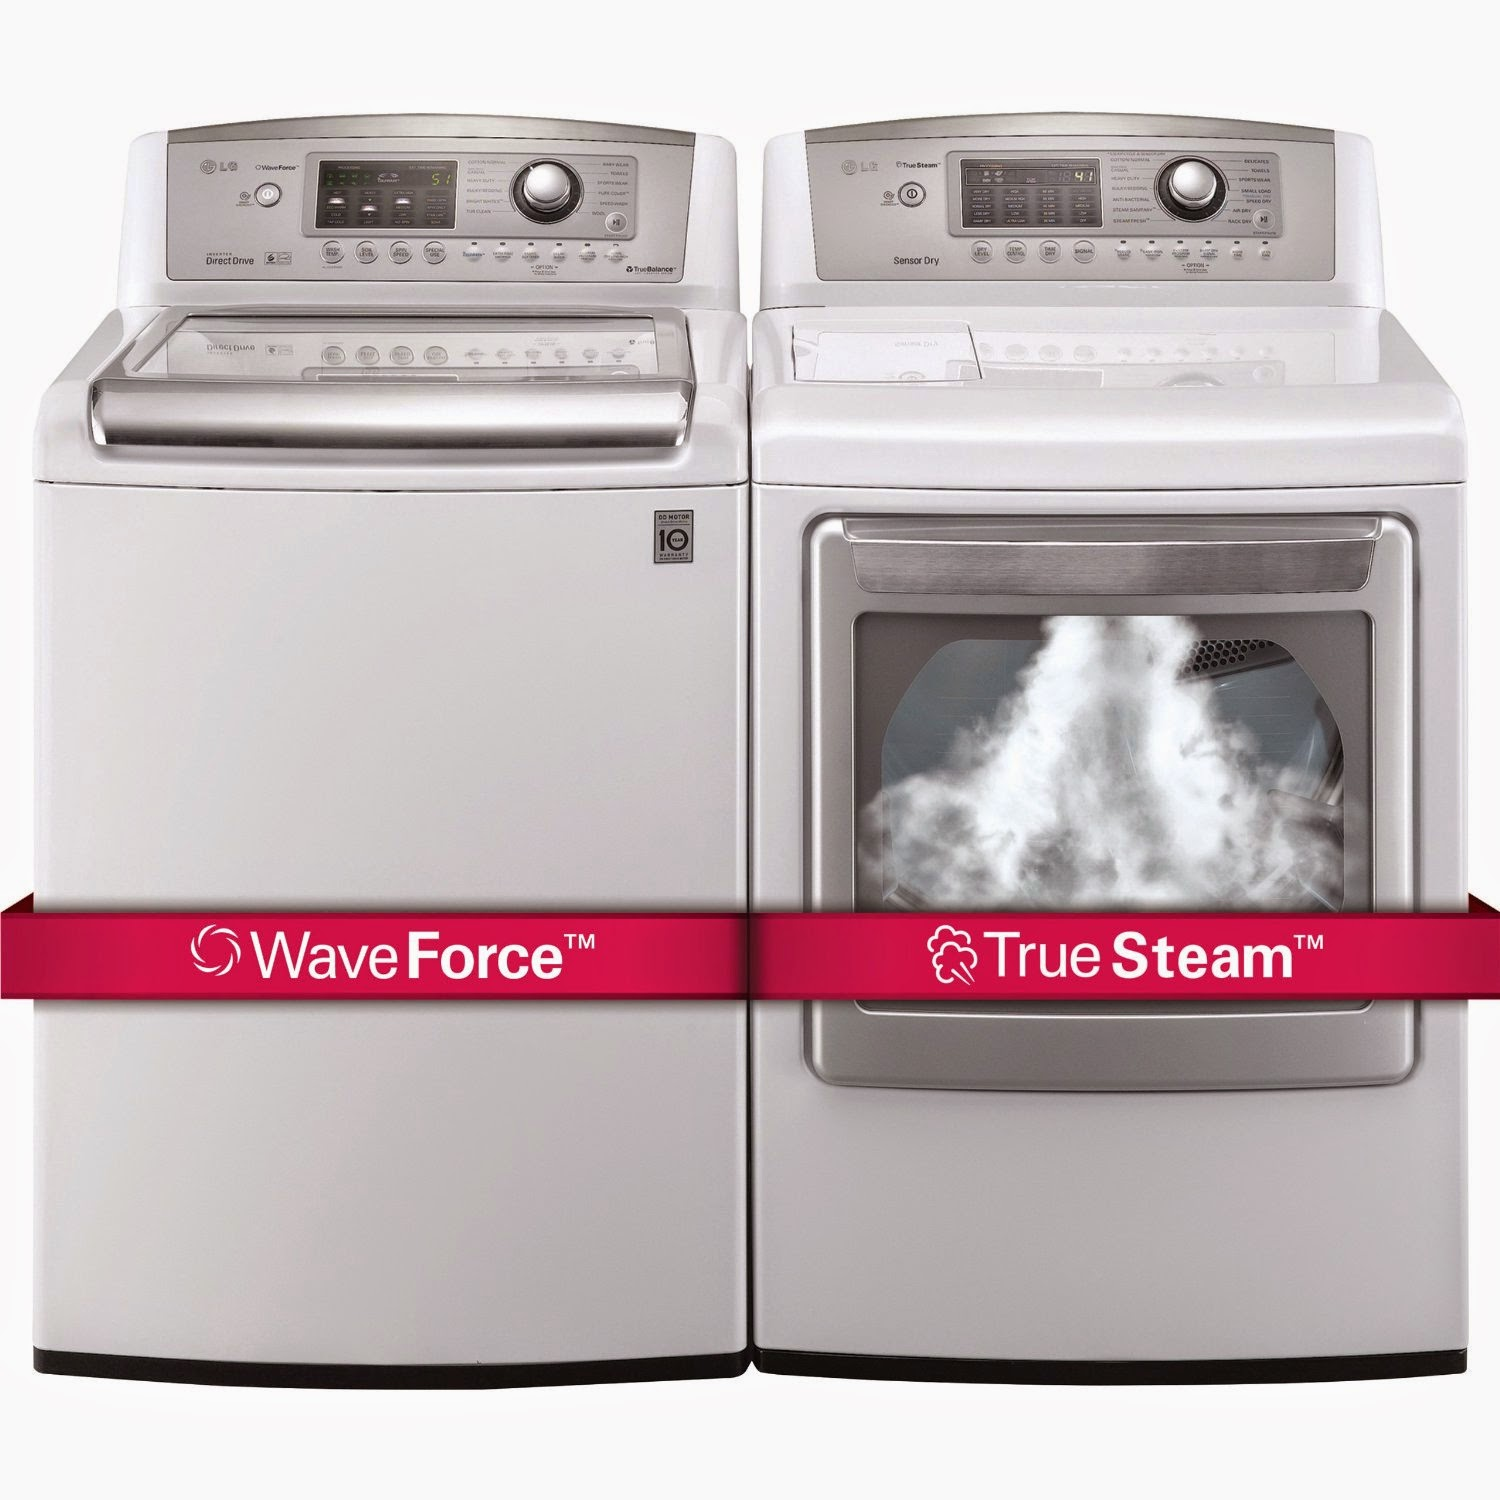 The best top load washer and dryer combo 2015 - Lg Ultra Large Top Load Laundry Pairs